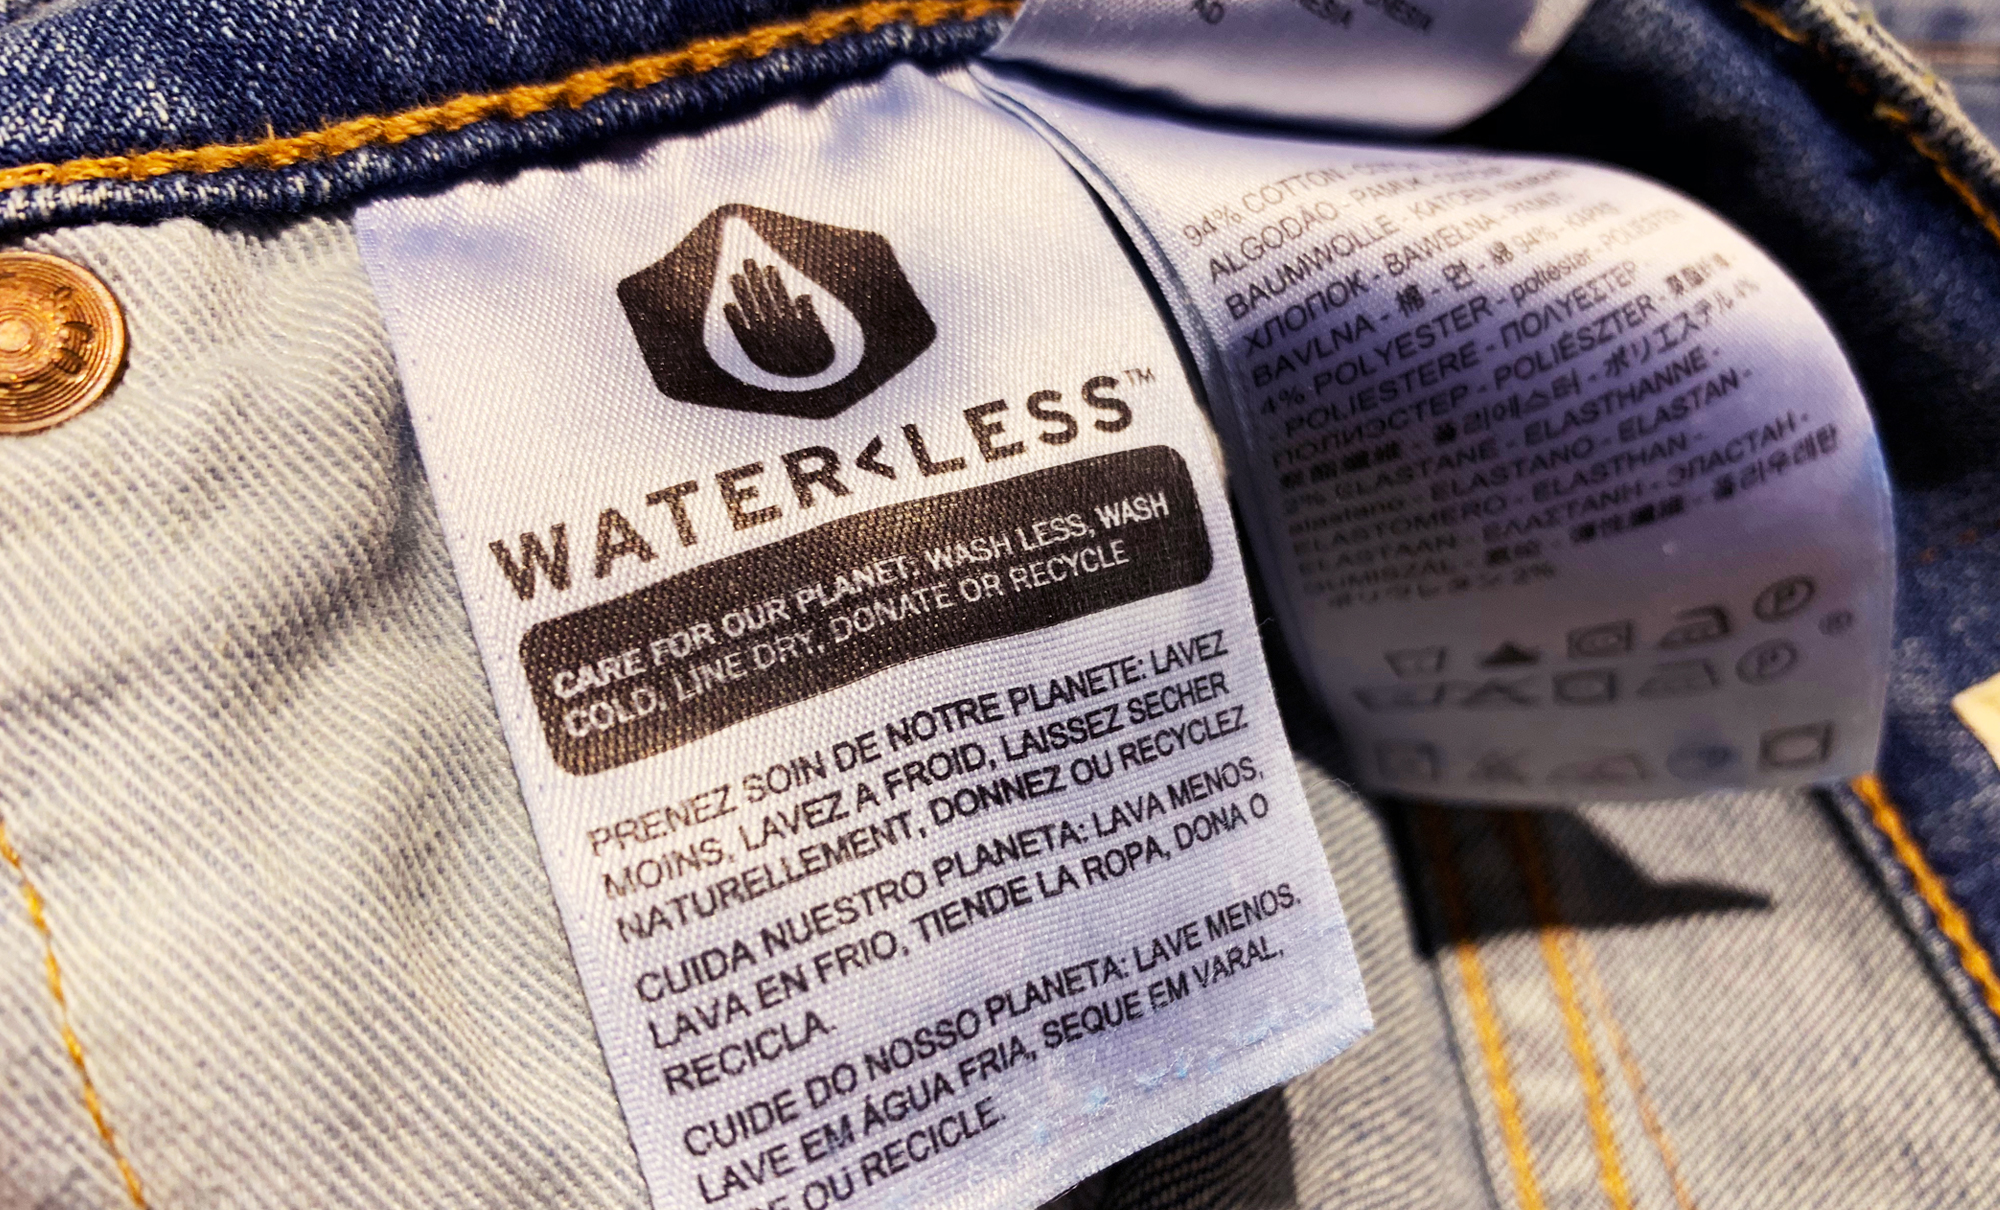 Levi Strauss wants to halve its water use